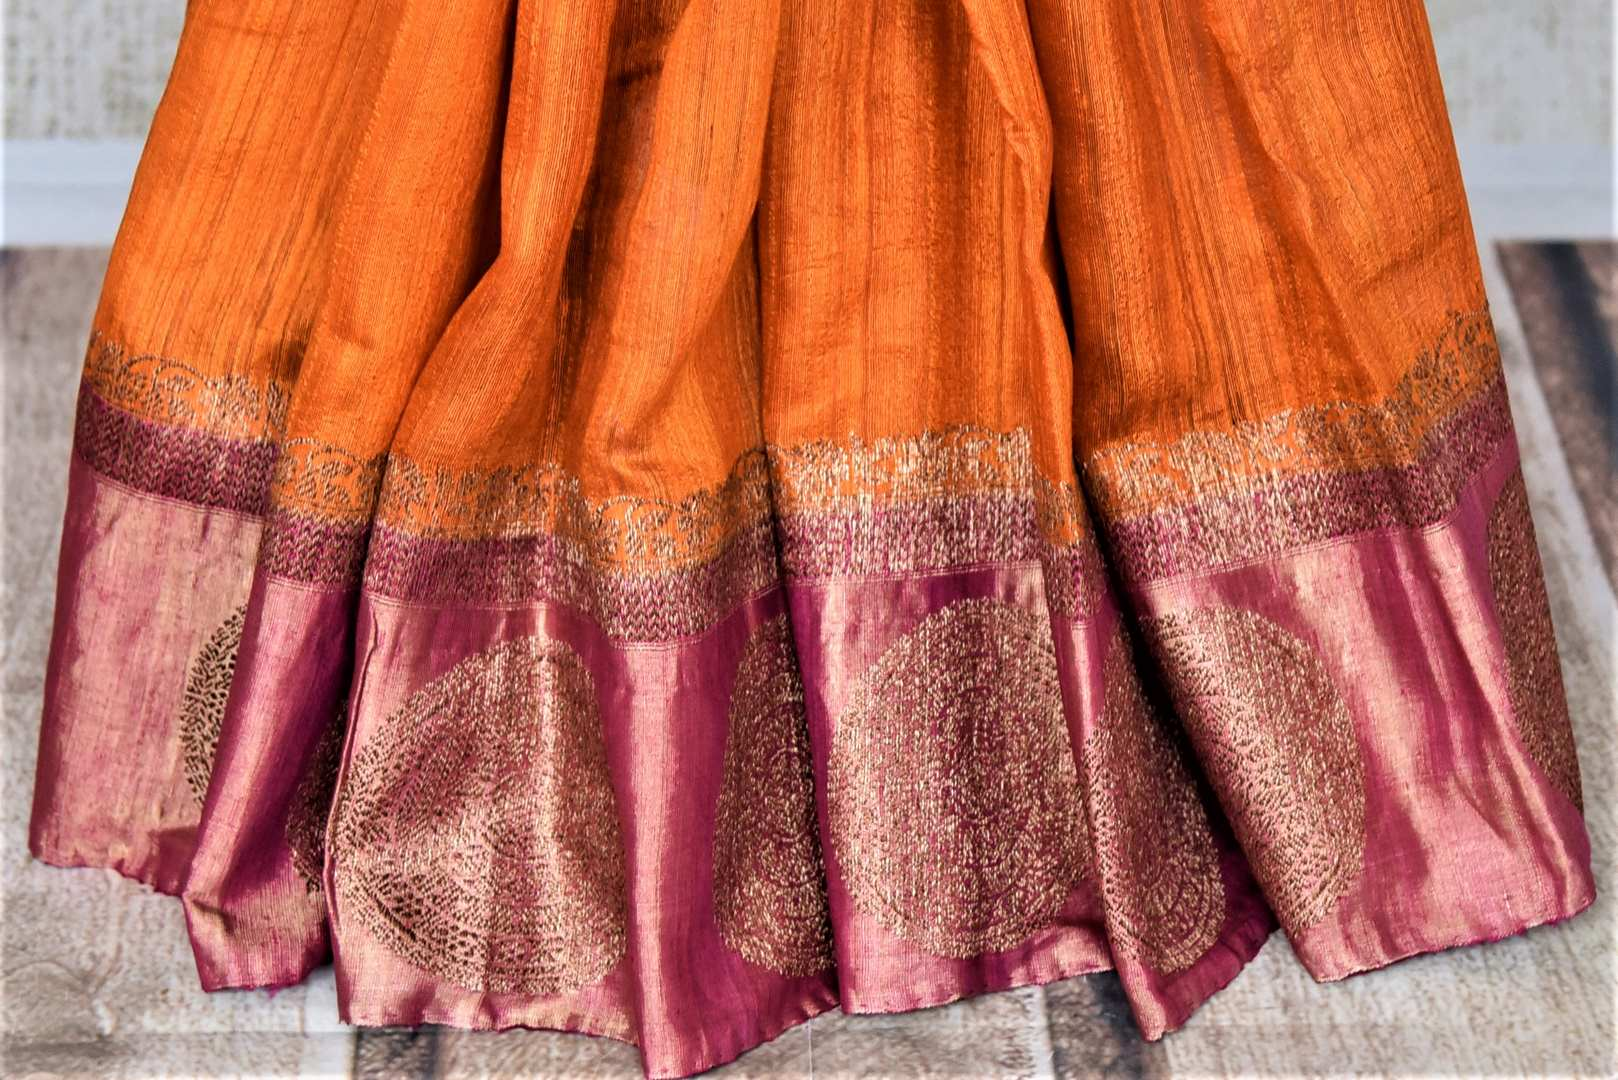 Buy beautiful orange tussar Banarsi sari online in USA with pink zari buta border. Choose tasteful handloom sarees for special occasions from Pure Elegance. Our exclusive Indian fashion store has a myriad of exquisite pure silk saris, tussar sarees, Banarasi sarees for Indian women in USA.-pleats